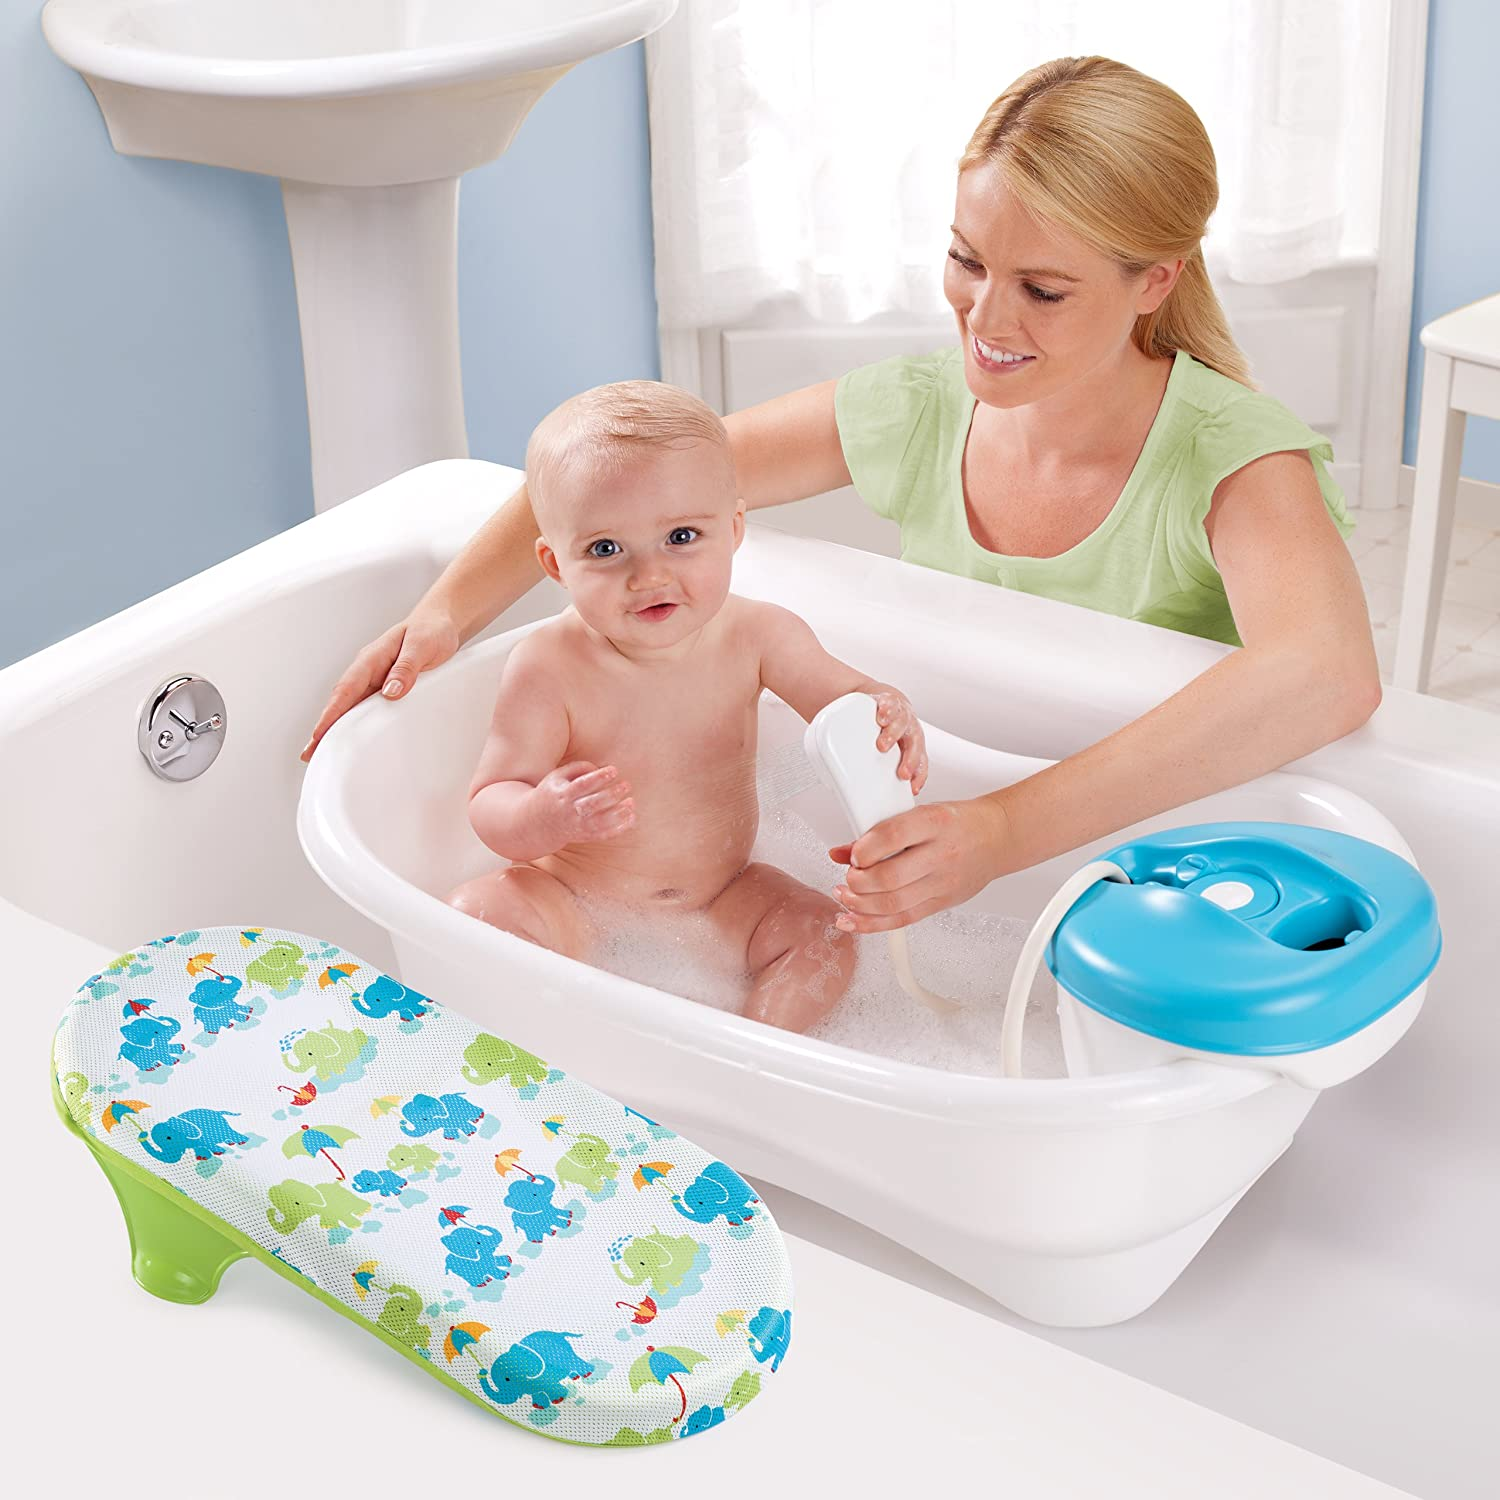 new convenient newborn to toddler bath and shower tub summer infant sling. Black Bedroom Furniture Sets. Home Design Ideas